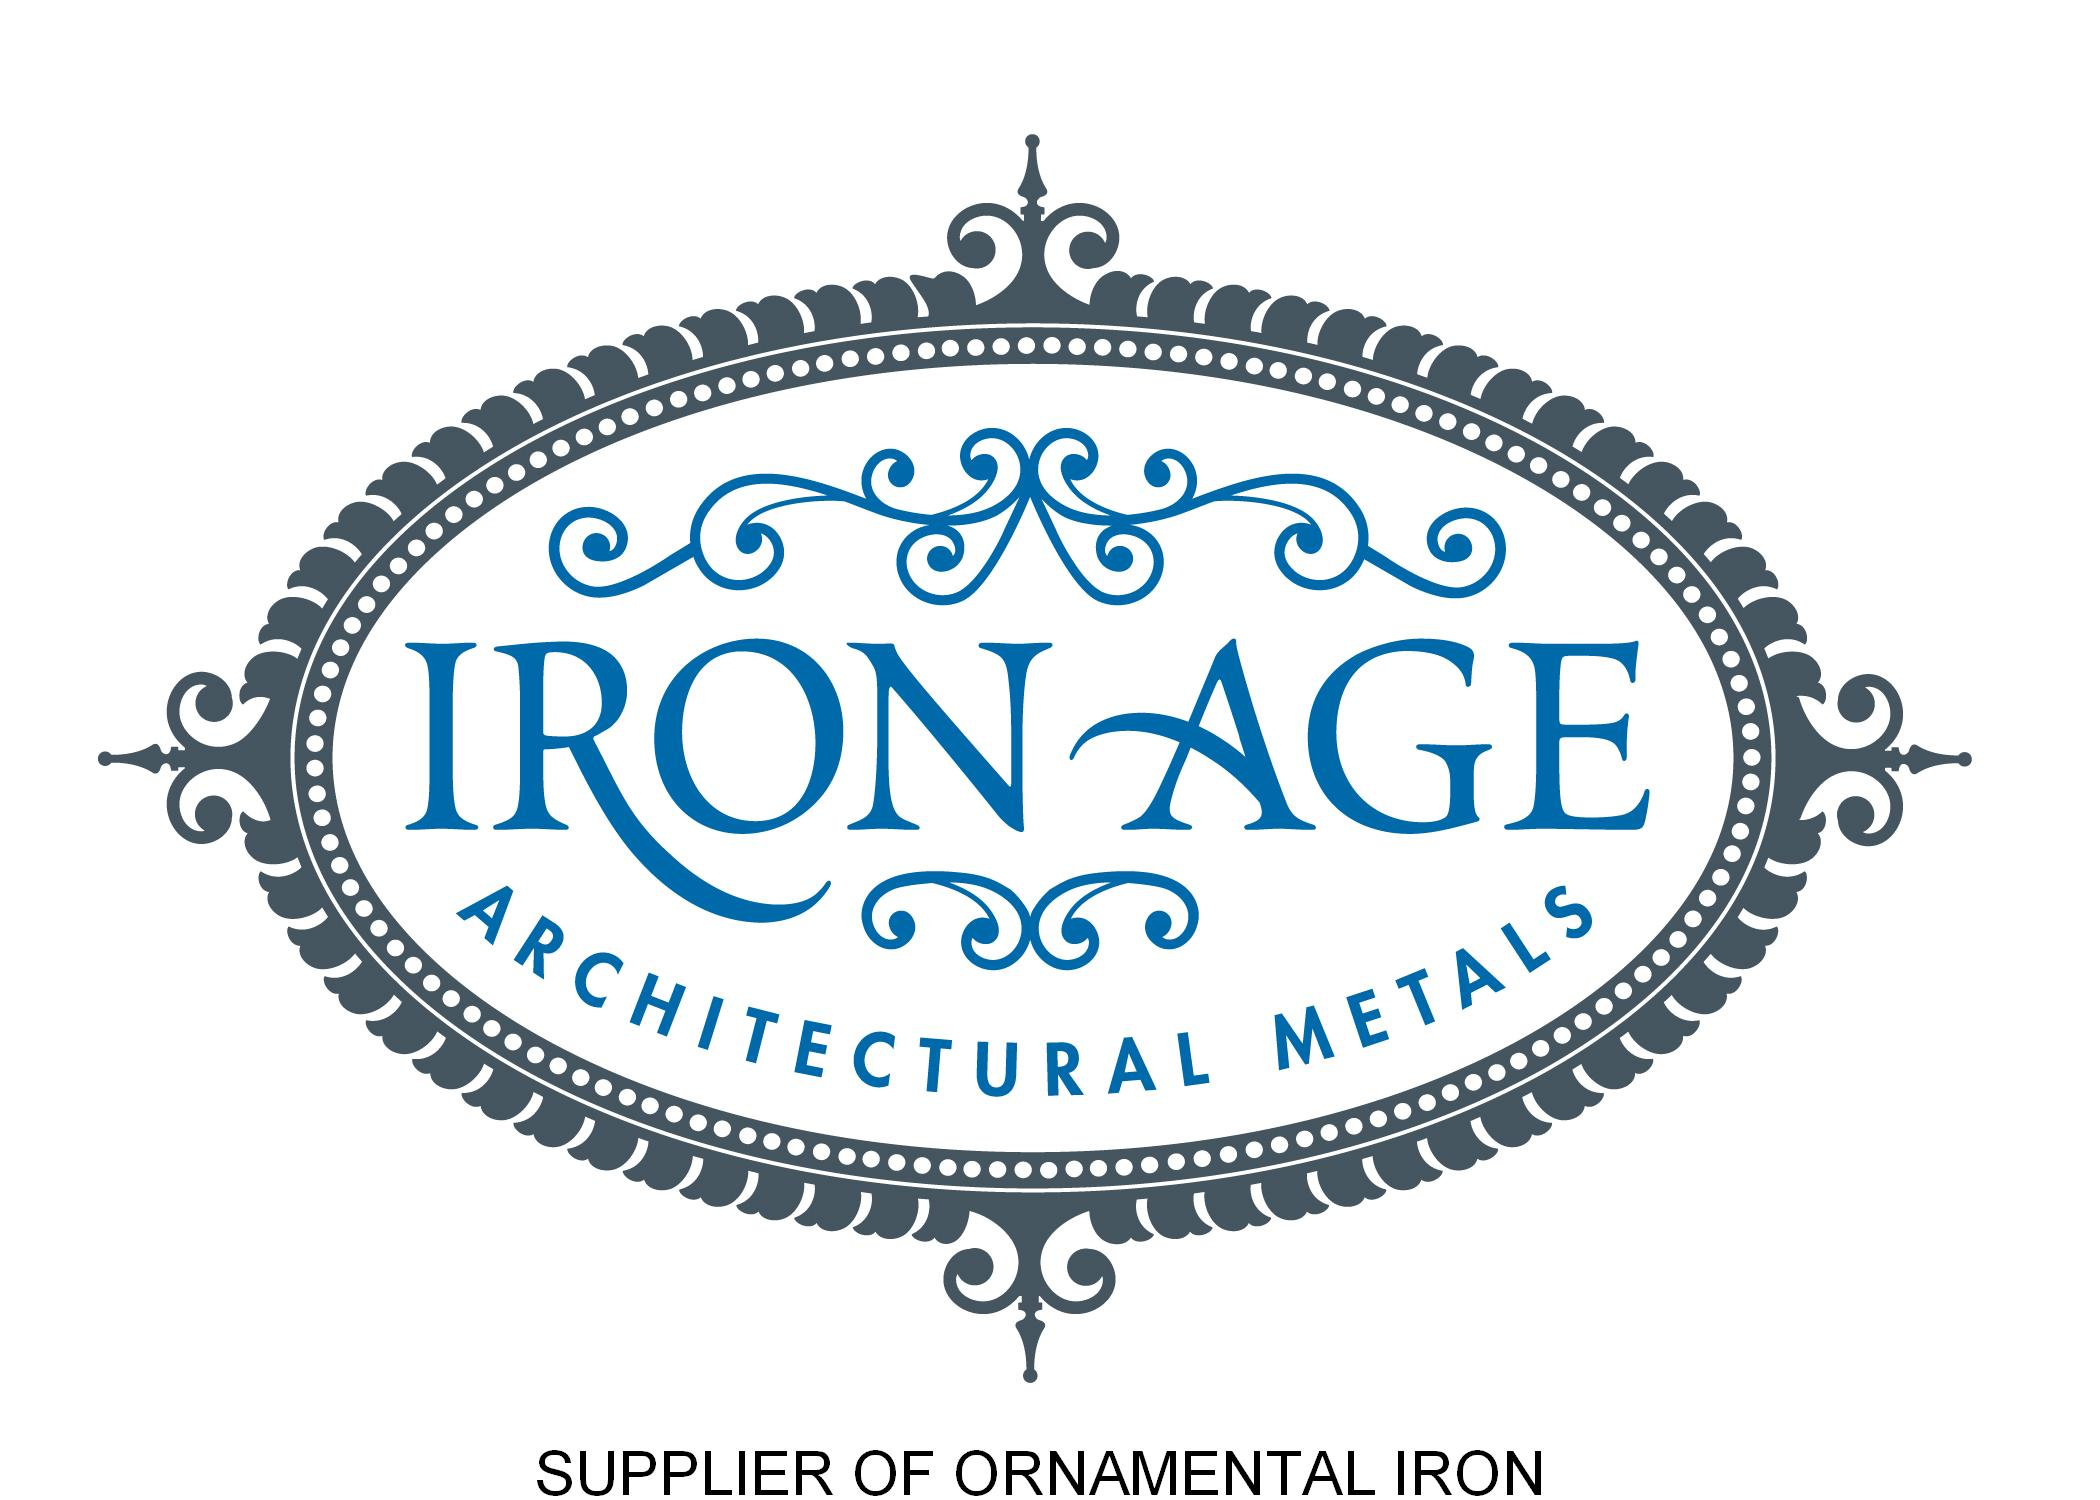 Iron Age Architectural Metals